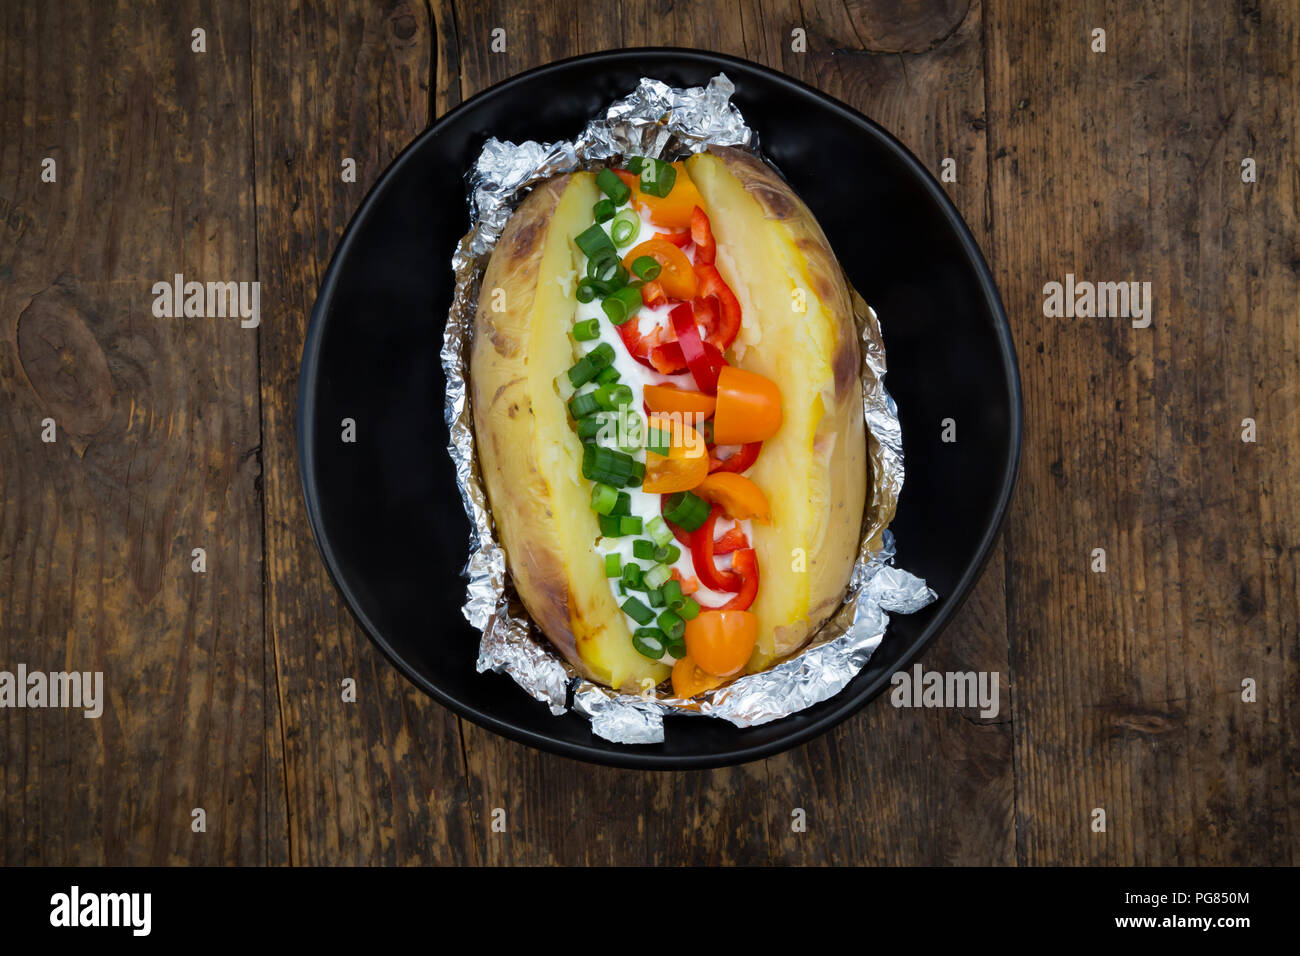 Baked patato with curd and chives, bell pepper, tomato and spring onions - Stock Image